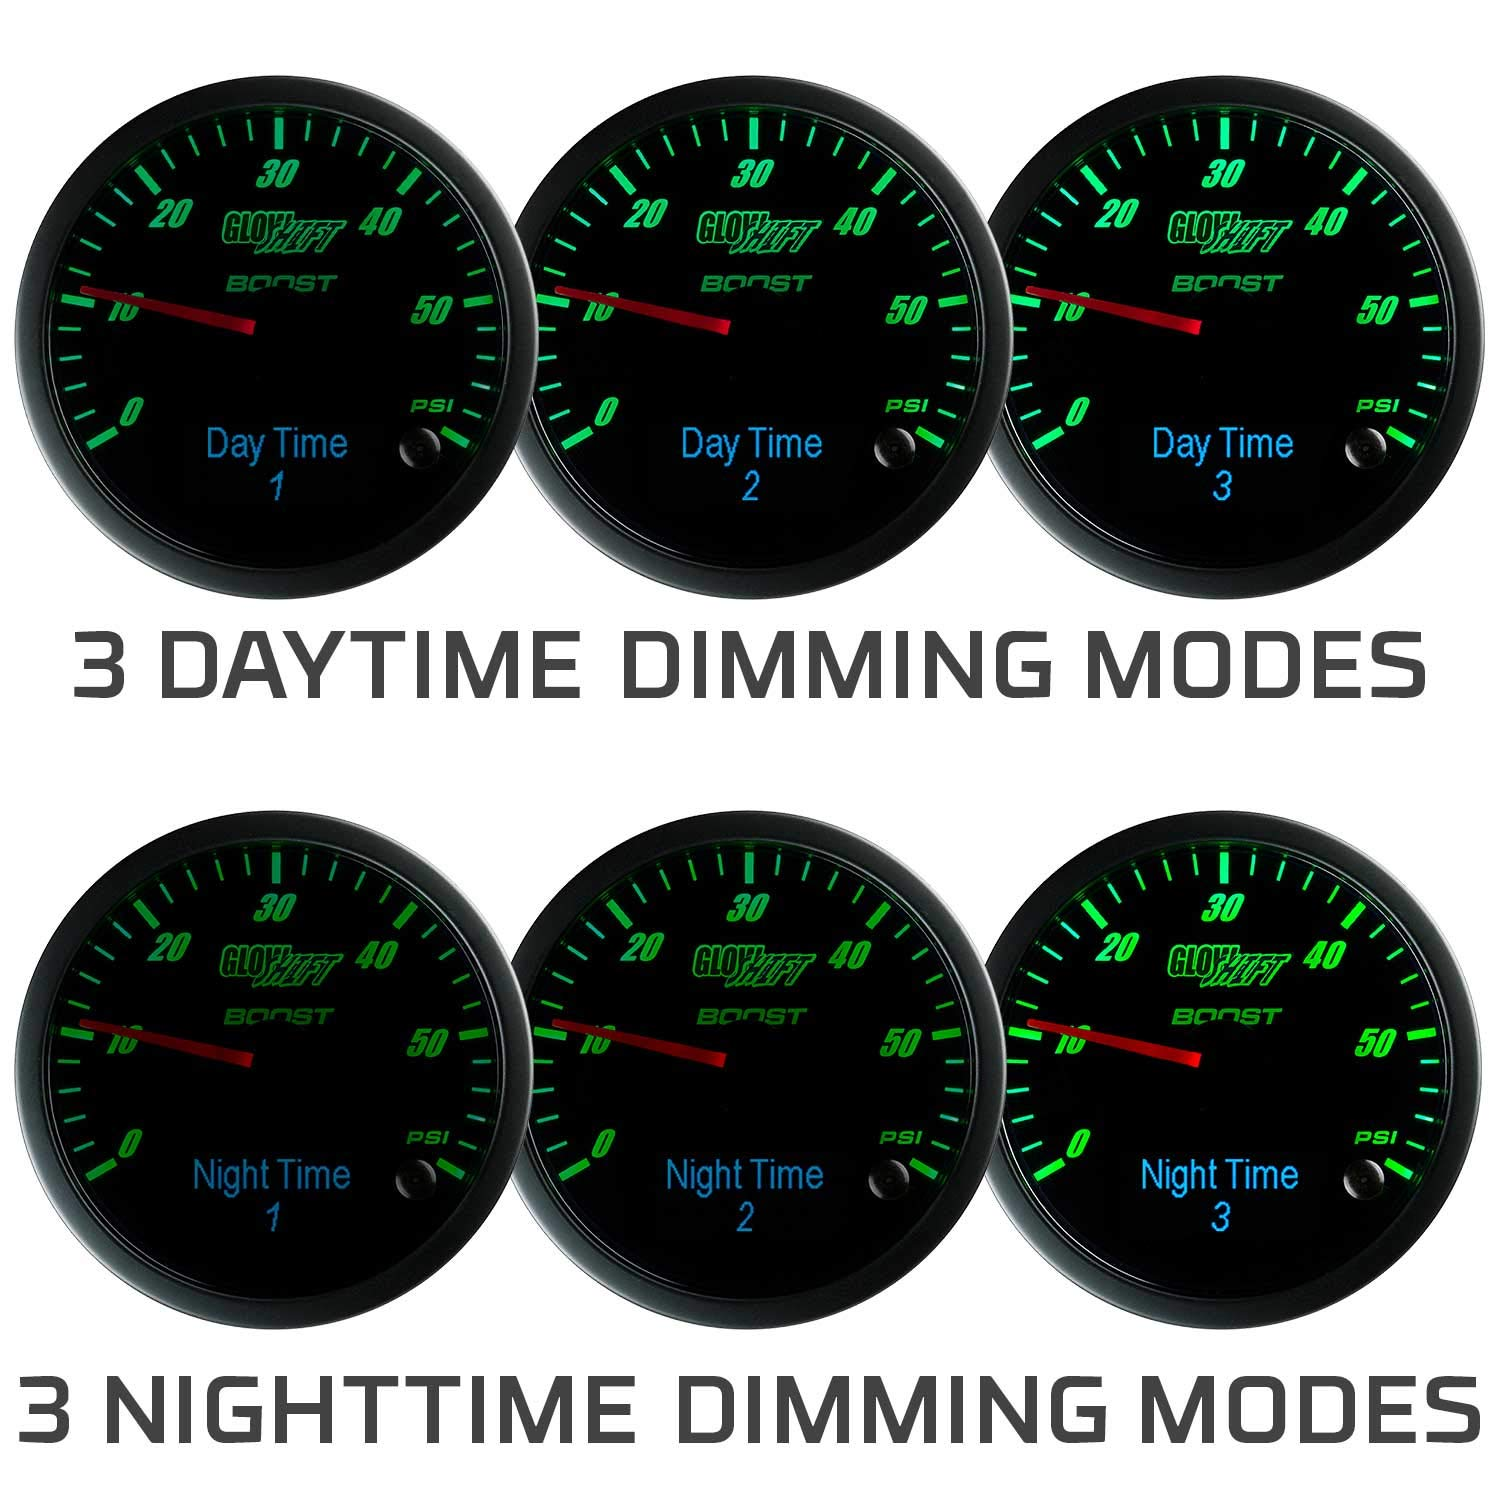 GlowShift 3in1 Analog 1500 F Pyrometer Exhaust Gas Temp EGT Gauge Kit with Digital 60 PSI Boost & 300 F Temperature Readings - 10 Selectable LED Colors - Black Dial - Clear Lens - 2-3/8'' 60mm by GlowShift (Image #7)